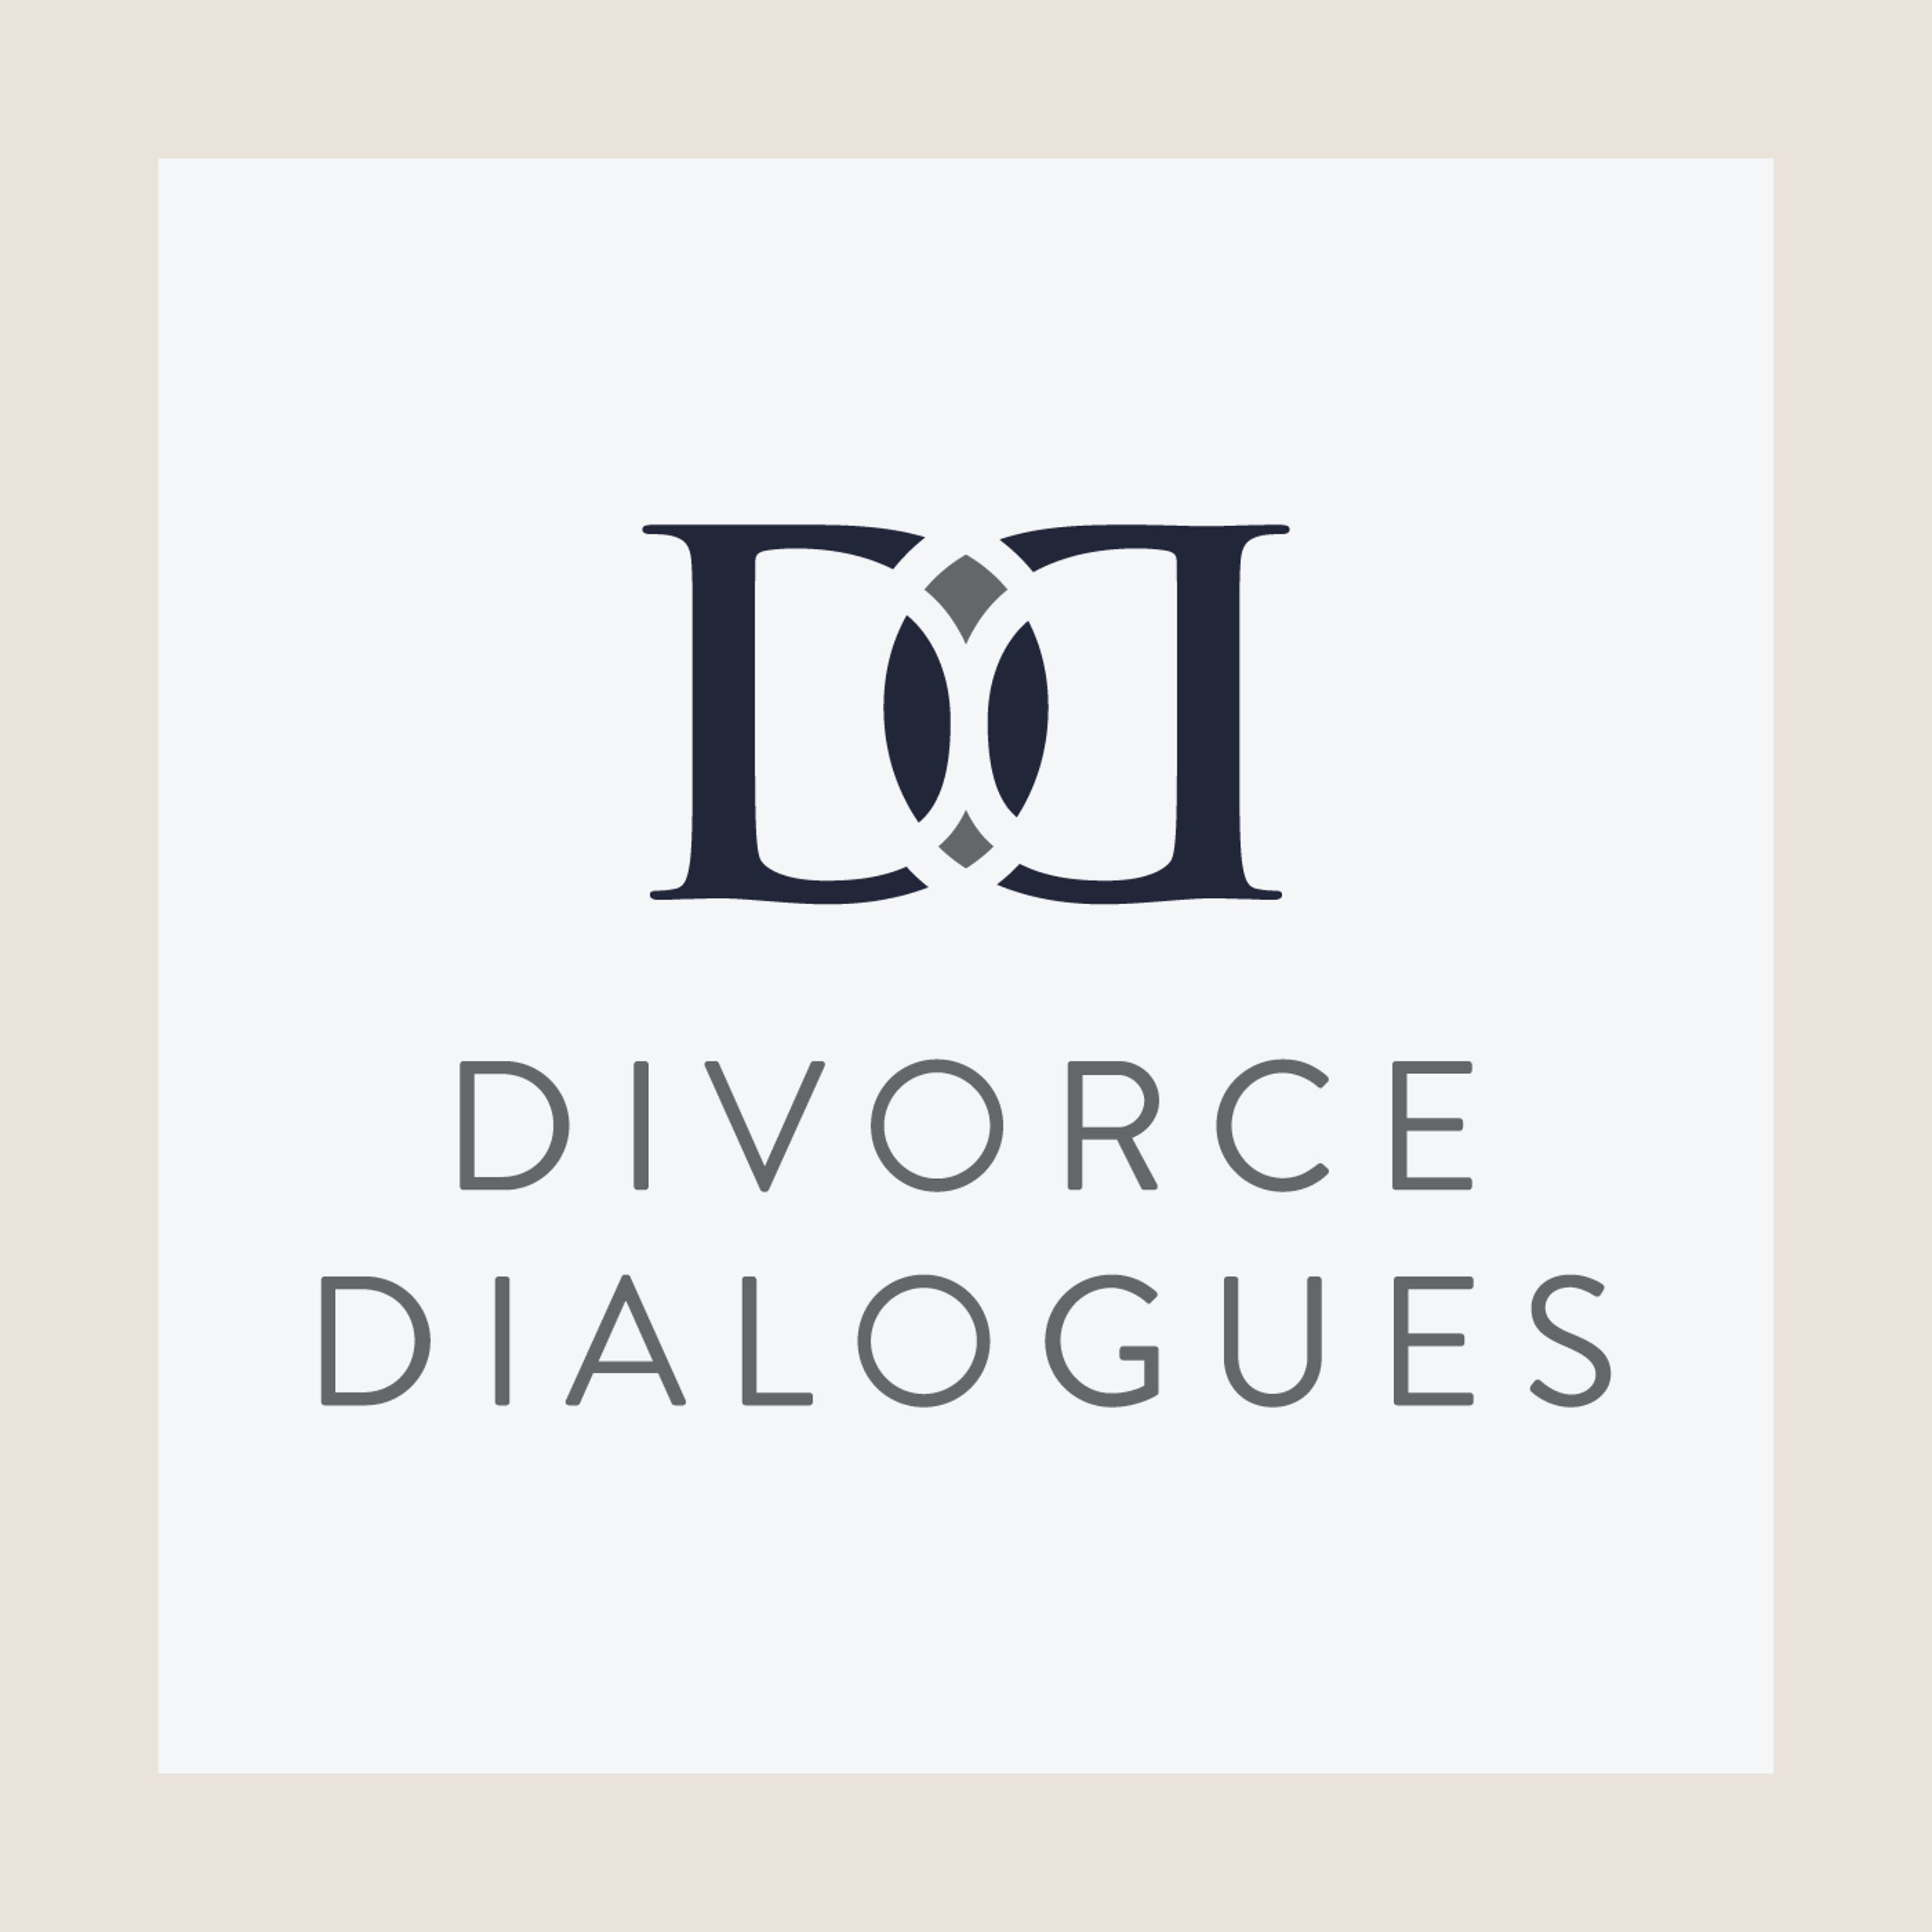 Divorce Dialogues - Putting Your Divorce on Pause with Terry Real